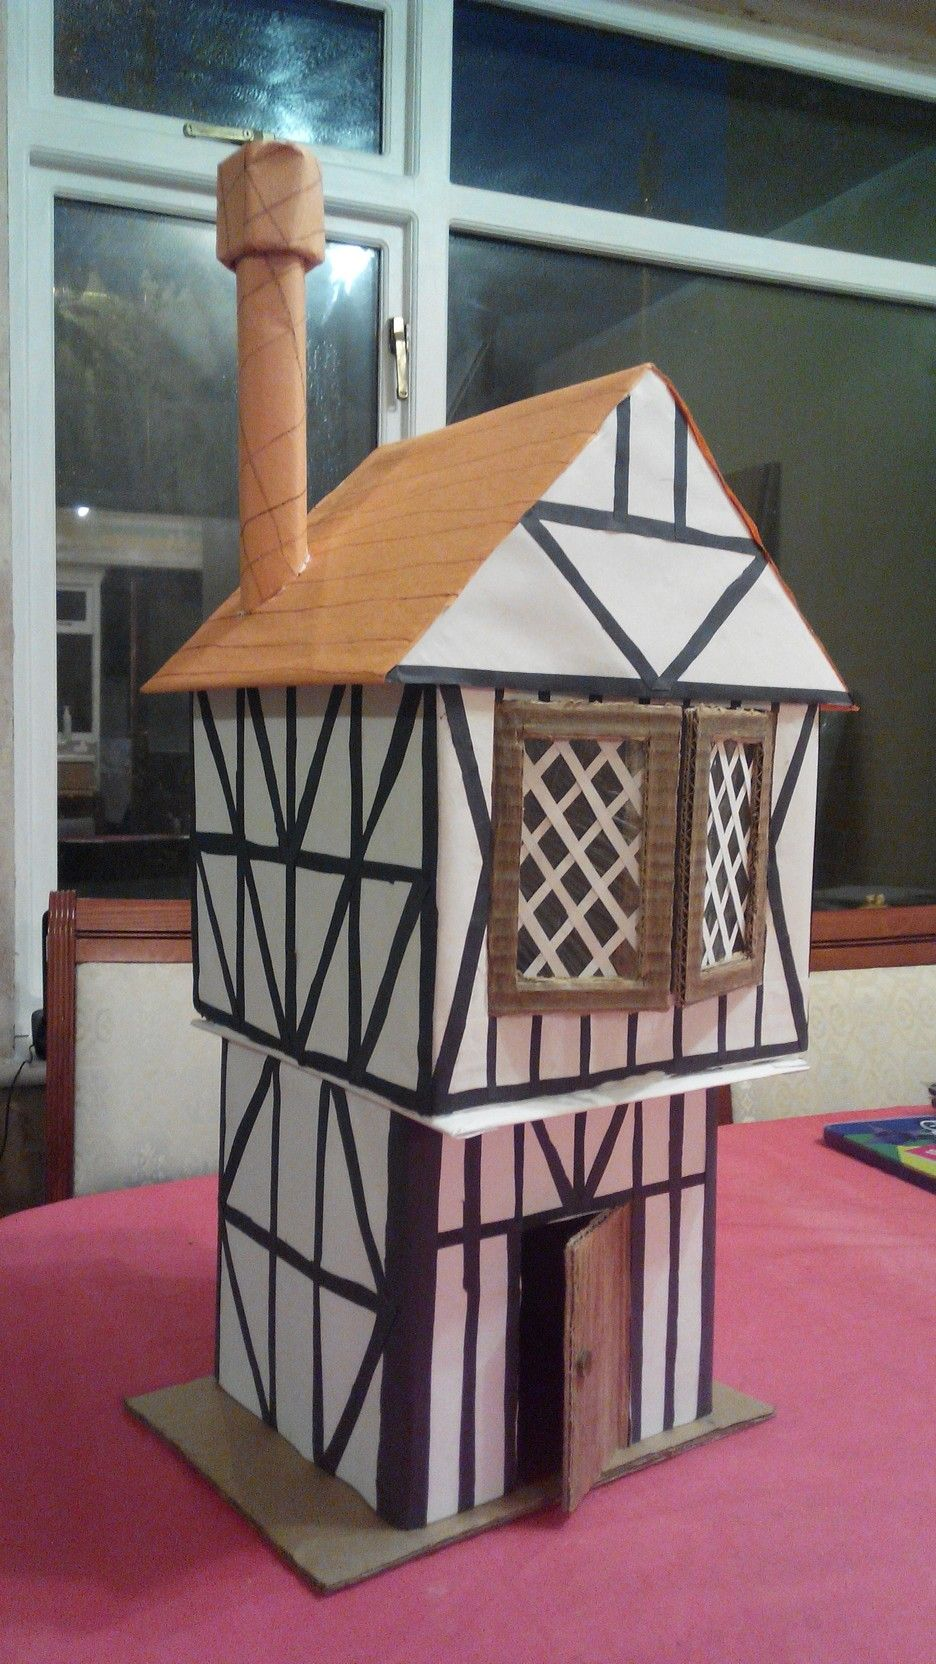 making model tudor houses house plans and ideas pinterest making model tudor houses